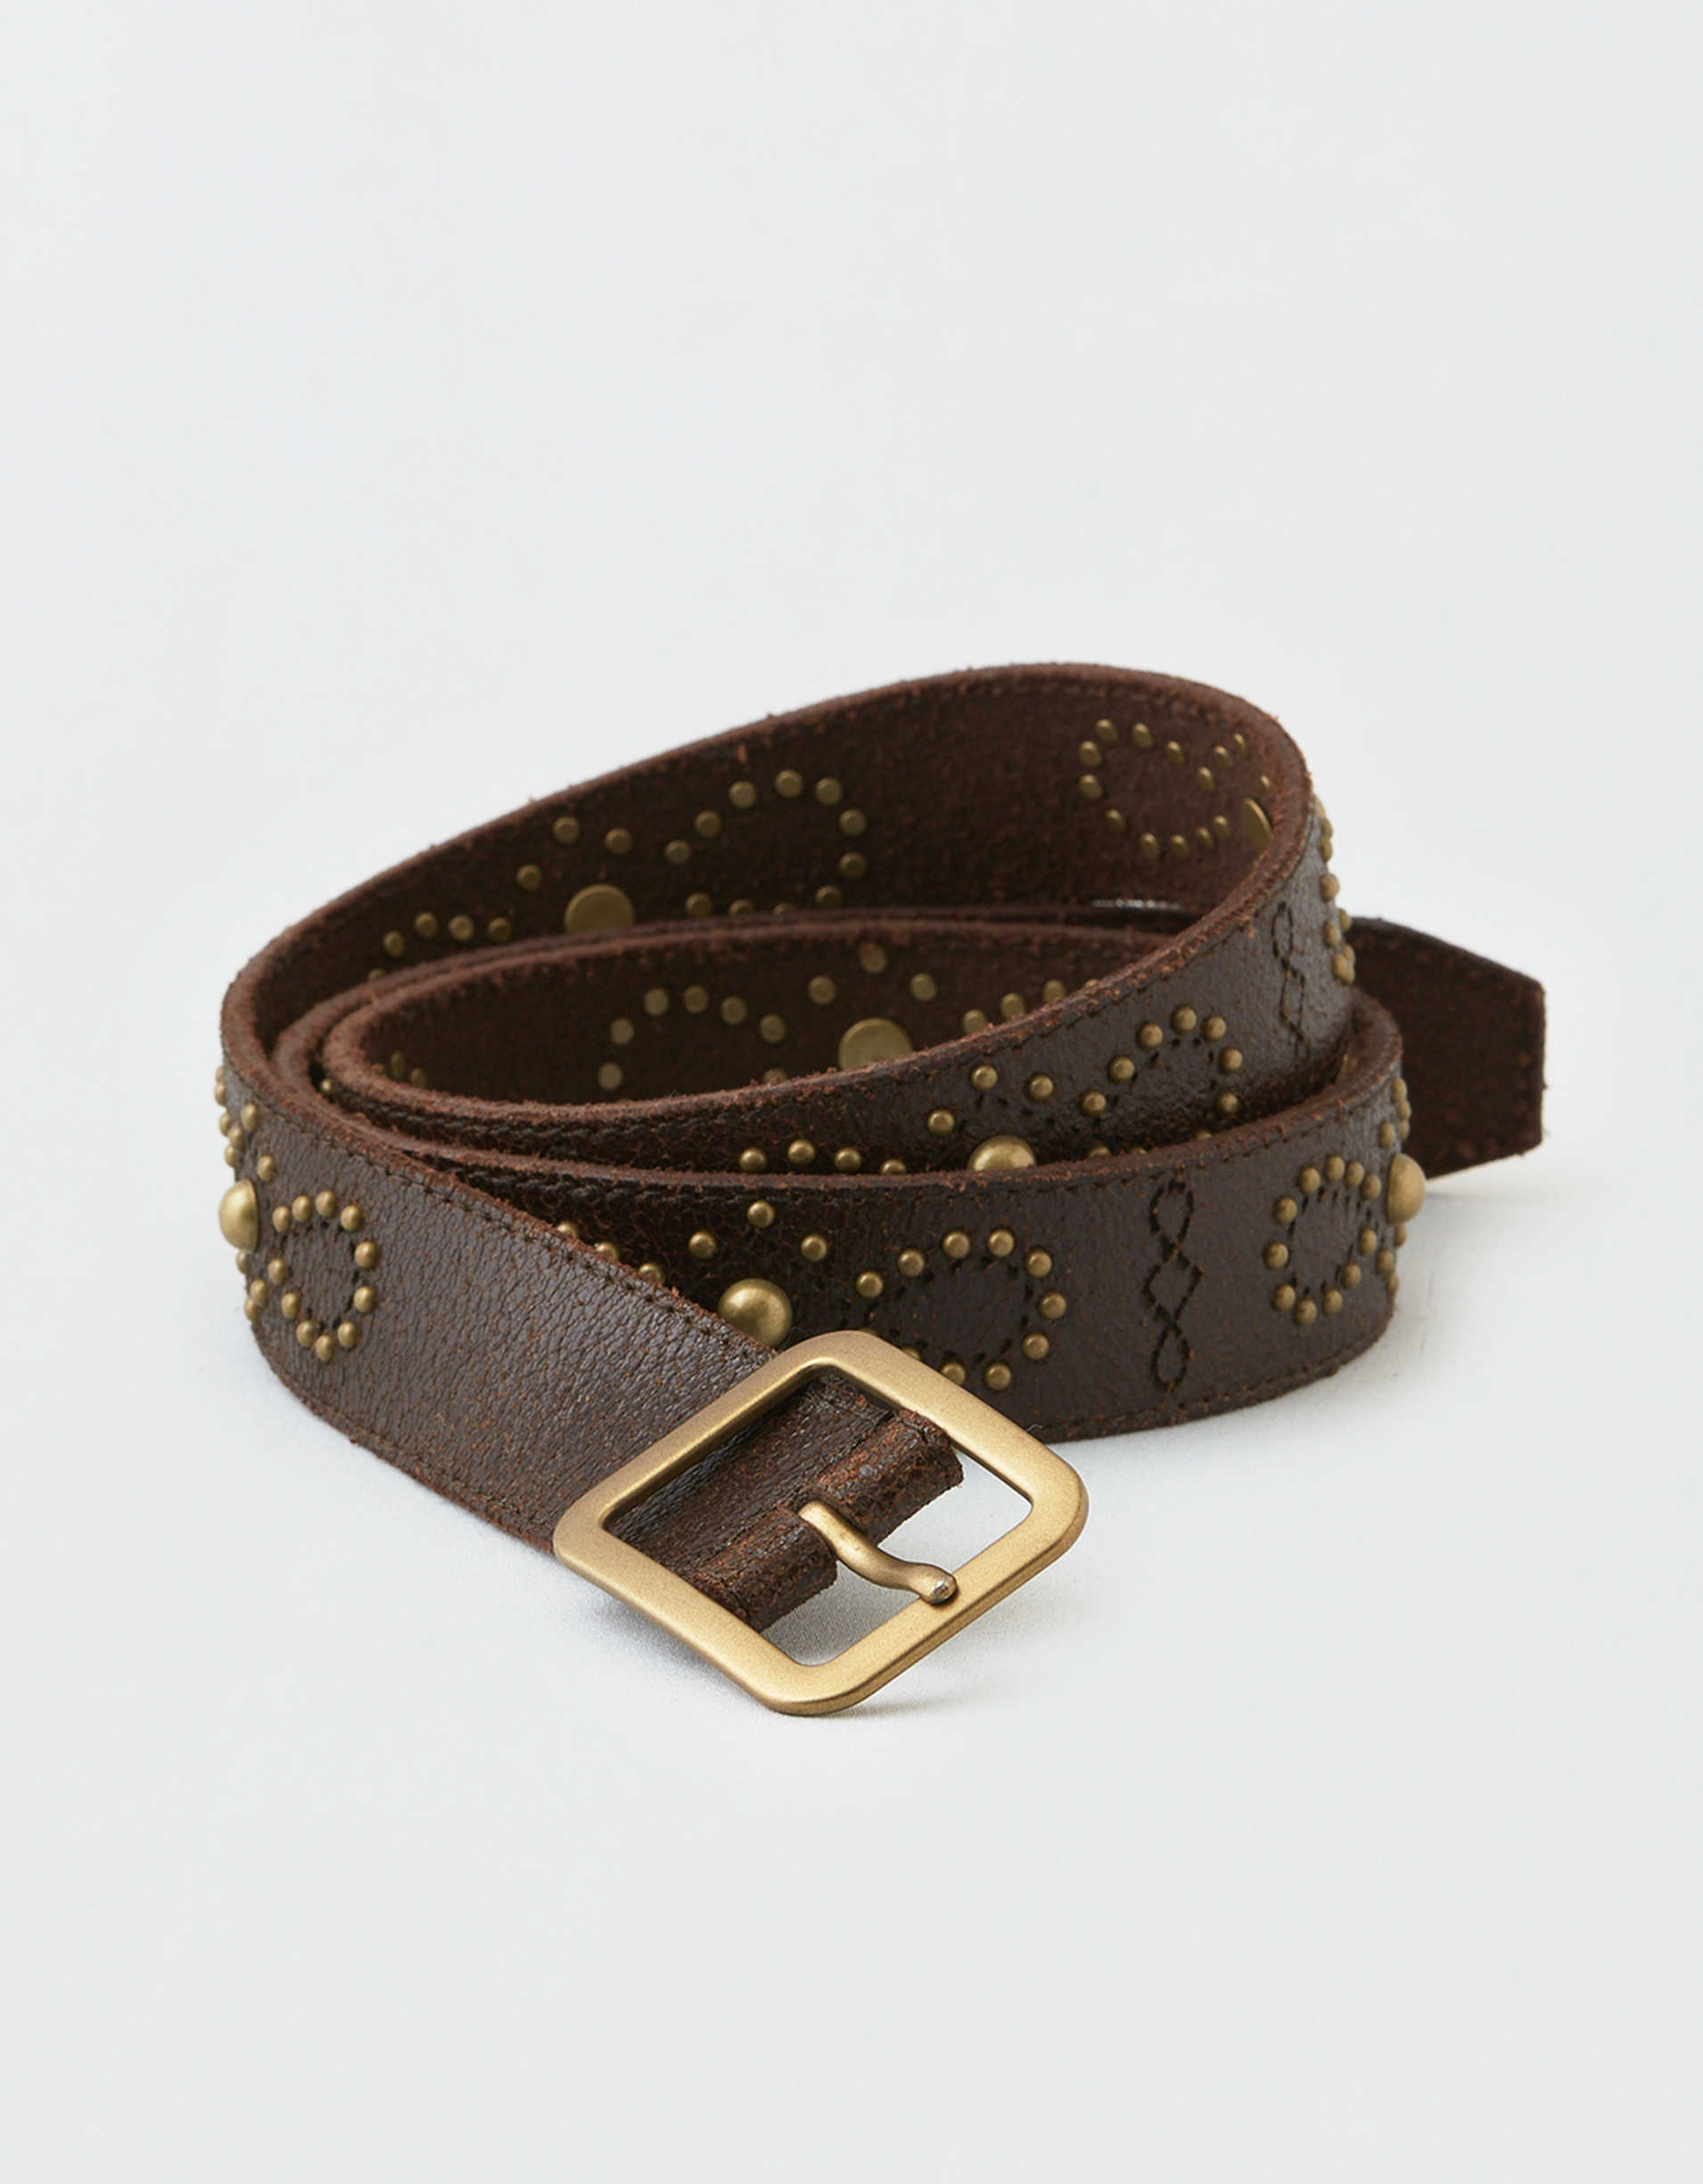 Frye & Co. Crackle Stud Belt